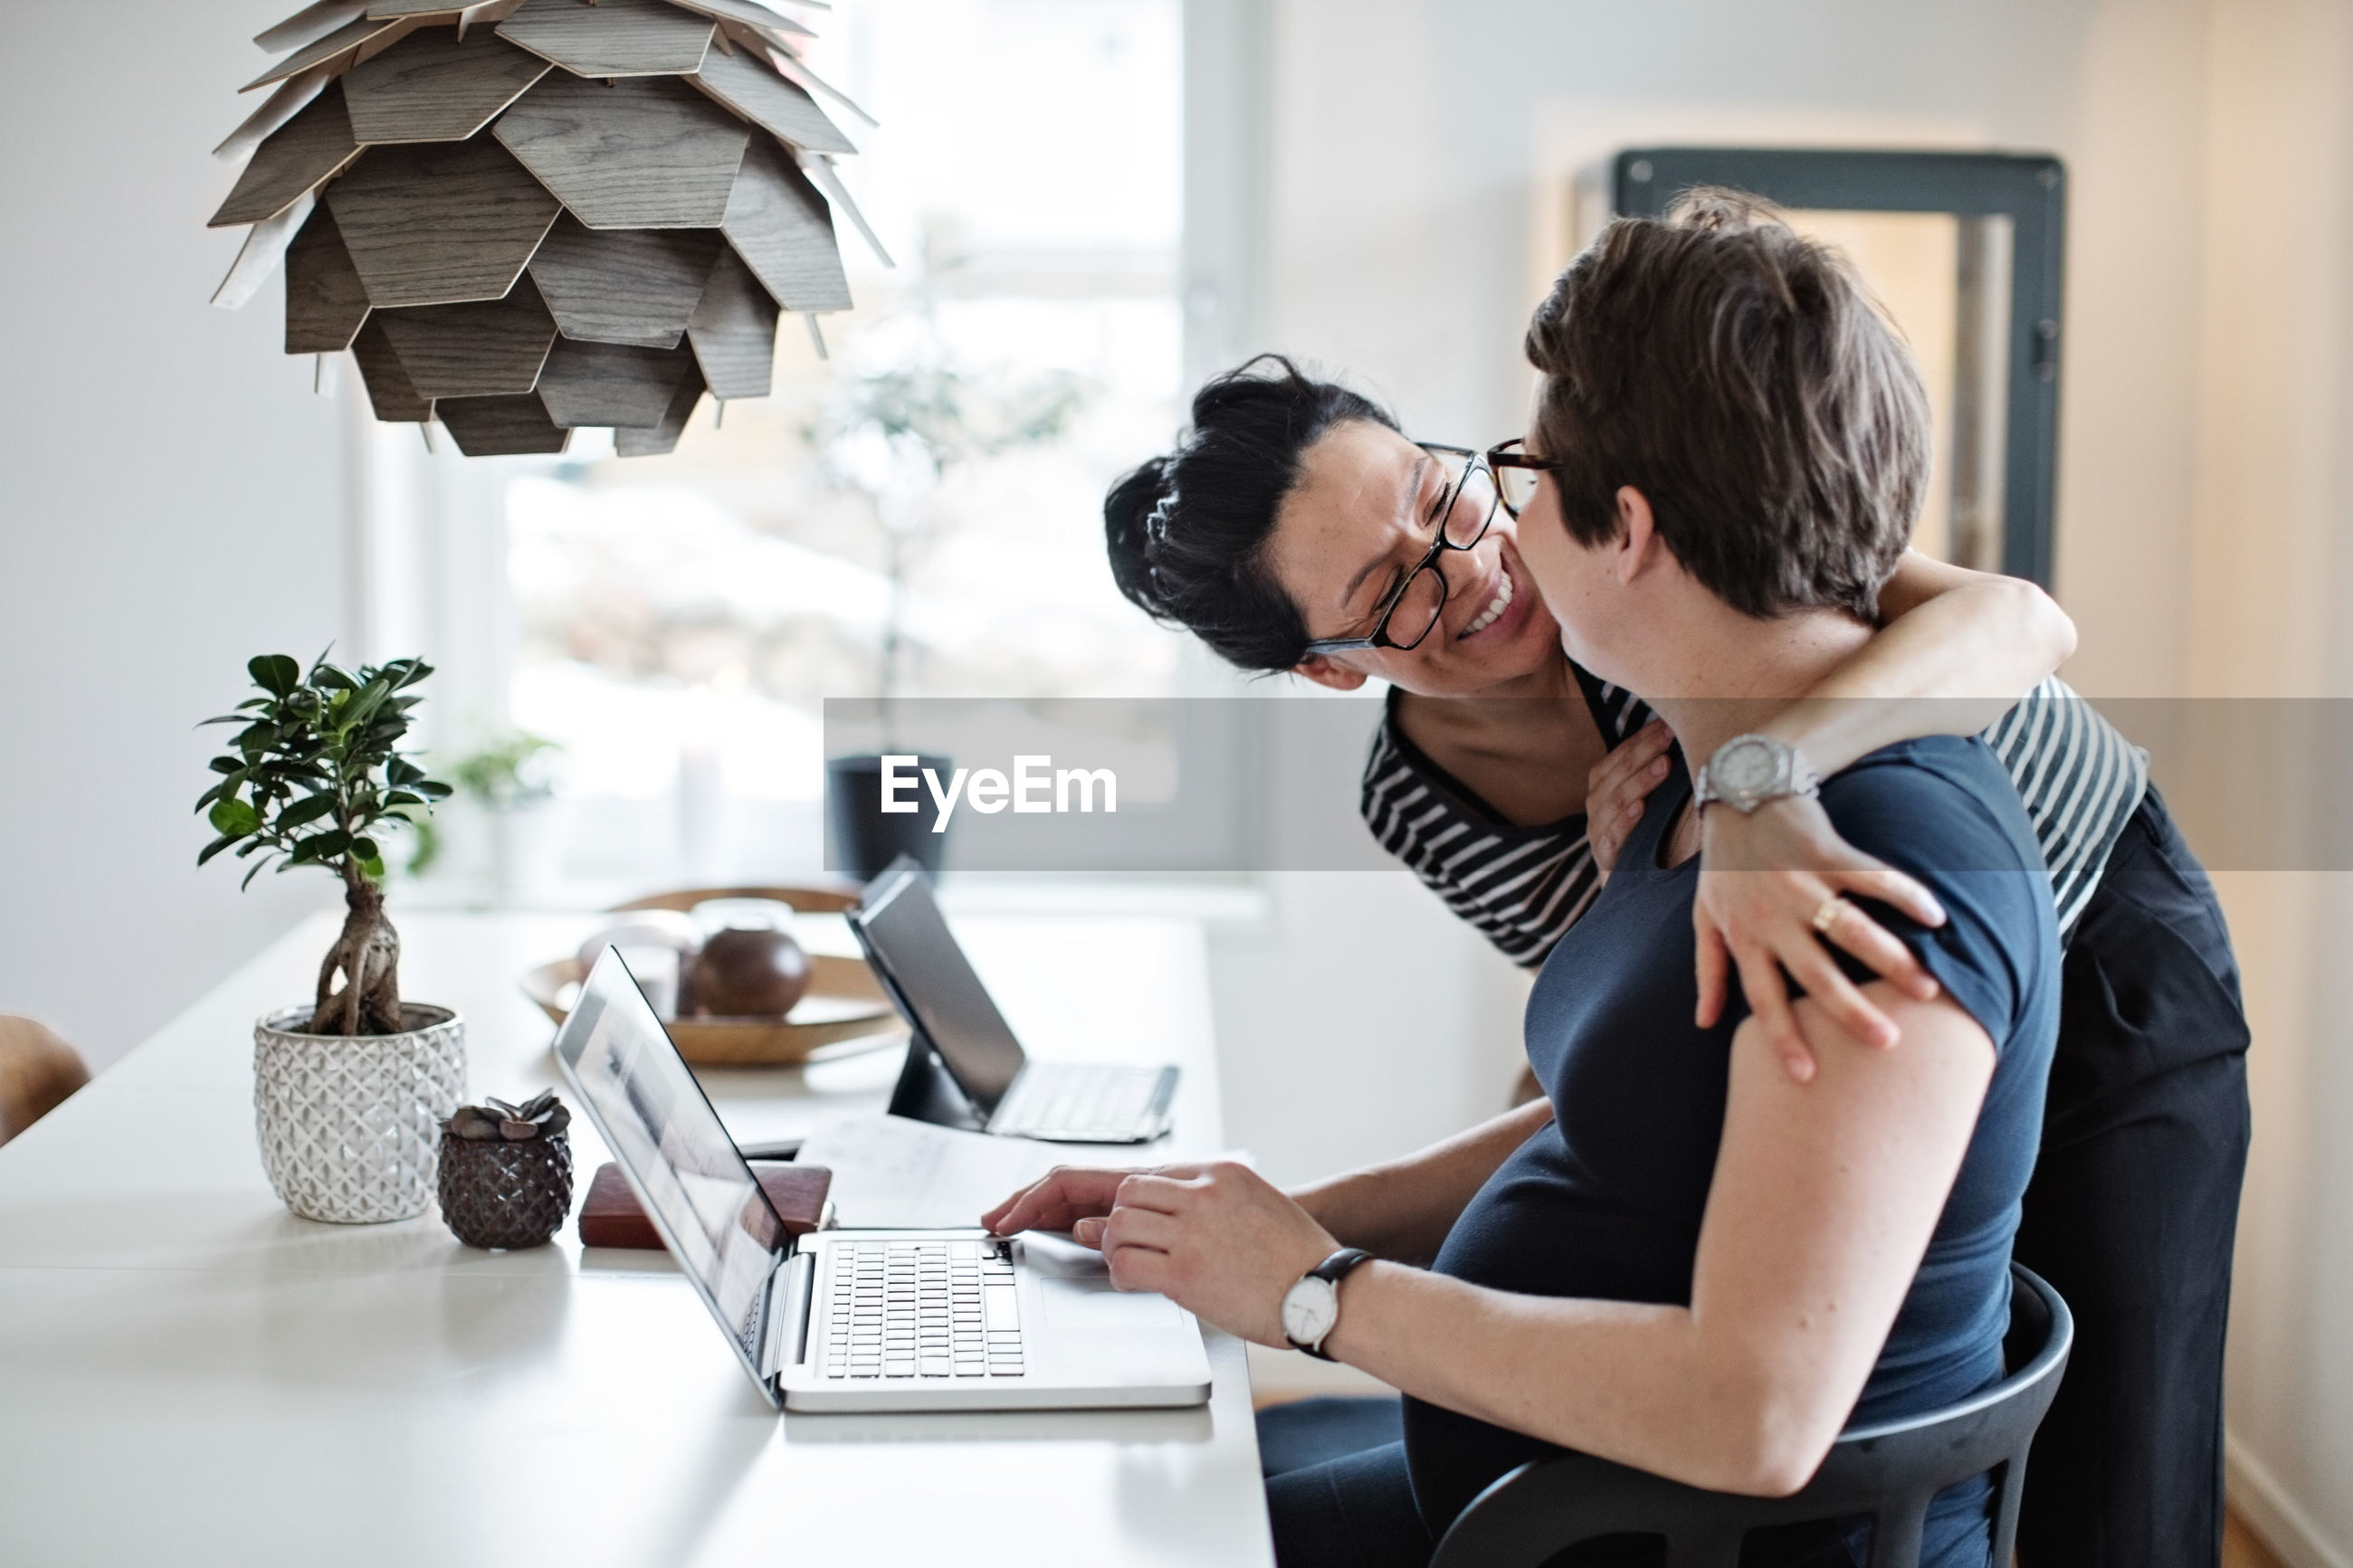 Smiling woman embracing girlfriend using laptop at table